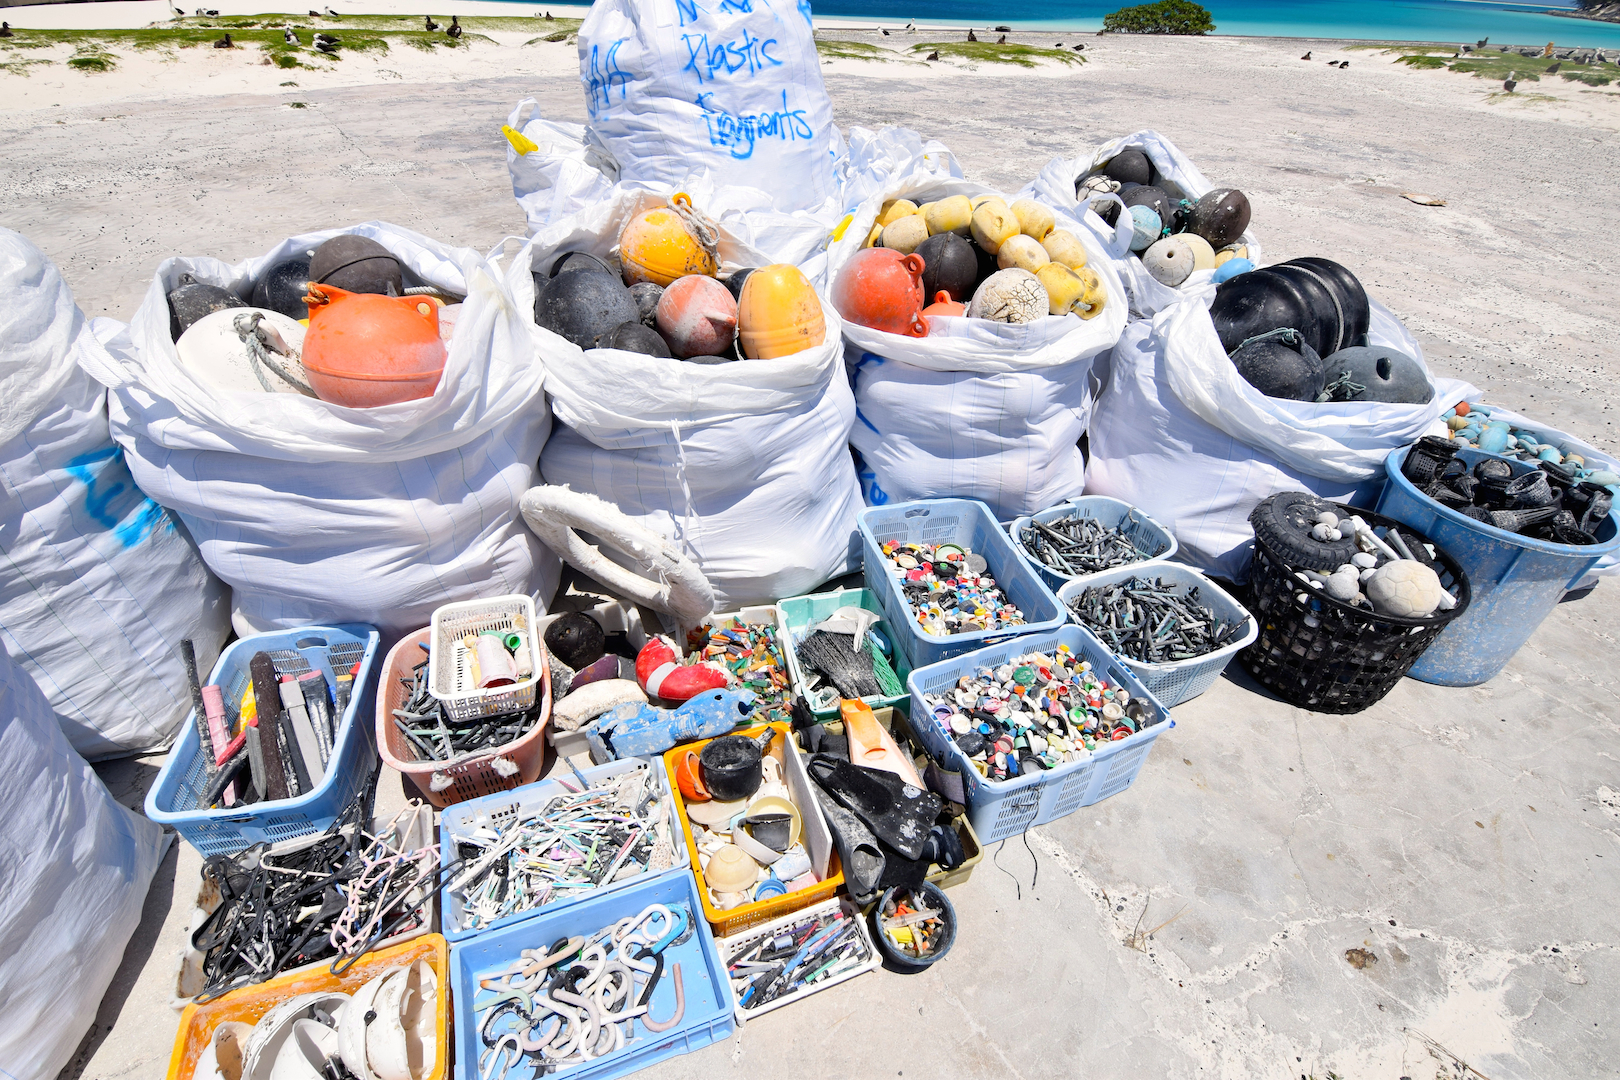 Midway, Atoll, Island, Northwestern, Hawaiian, beach, clean up, marine, debris, plastic, nets, floats, fishing, removal, oyster spacers, toothbrush, hardhats, umbrella handles, pens, bottle caps, life rings, bottles, baseballs, eel cone traps, lighters